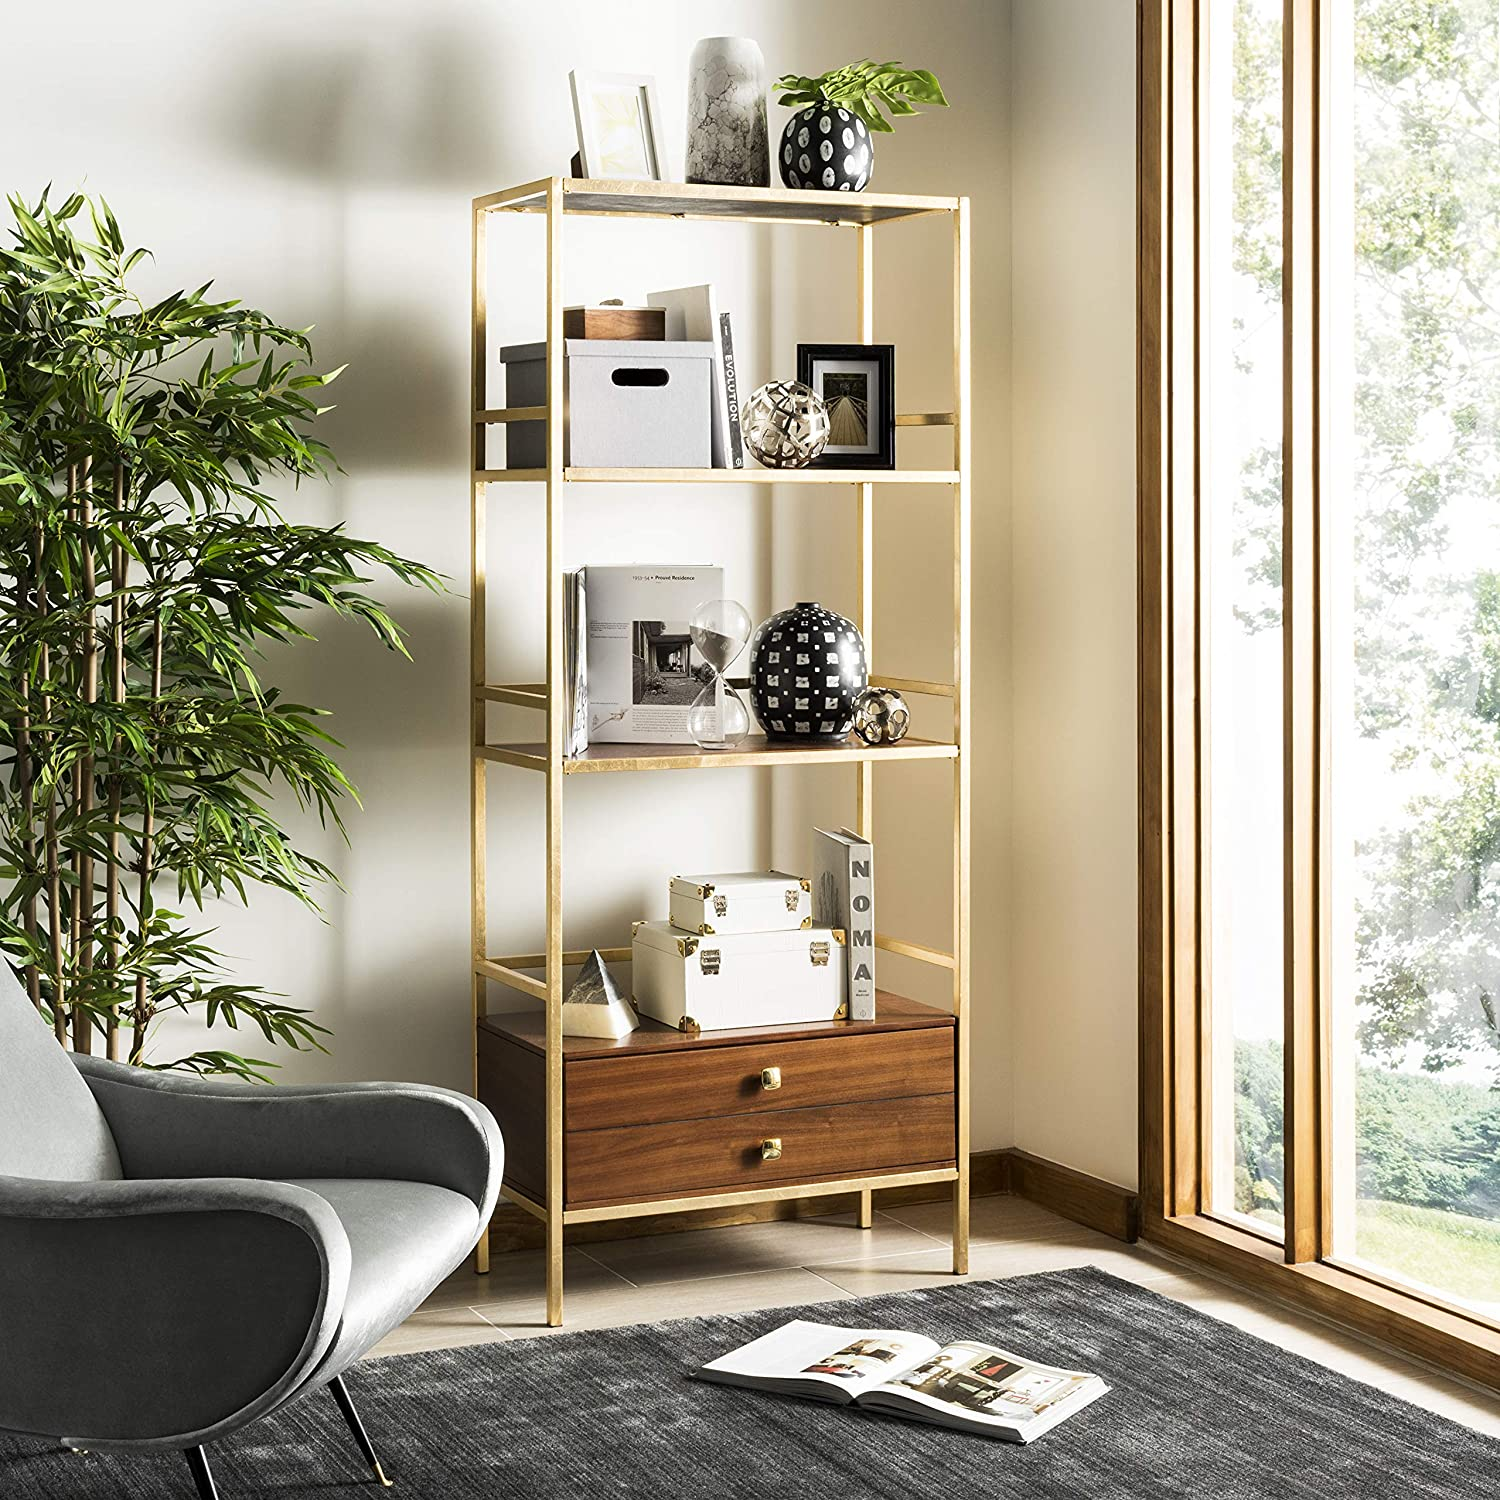 Safavieh Etg6205 A Home Collection Mateo 4 Tier 1 Drawer Etagere, Gold And Walnut by Safavieh